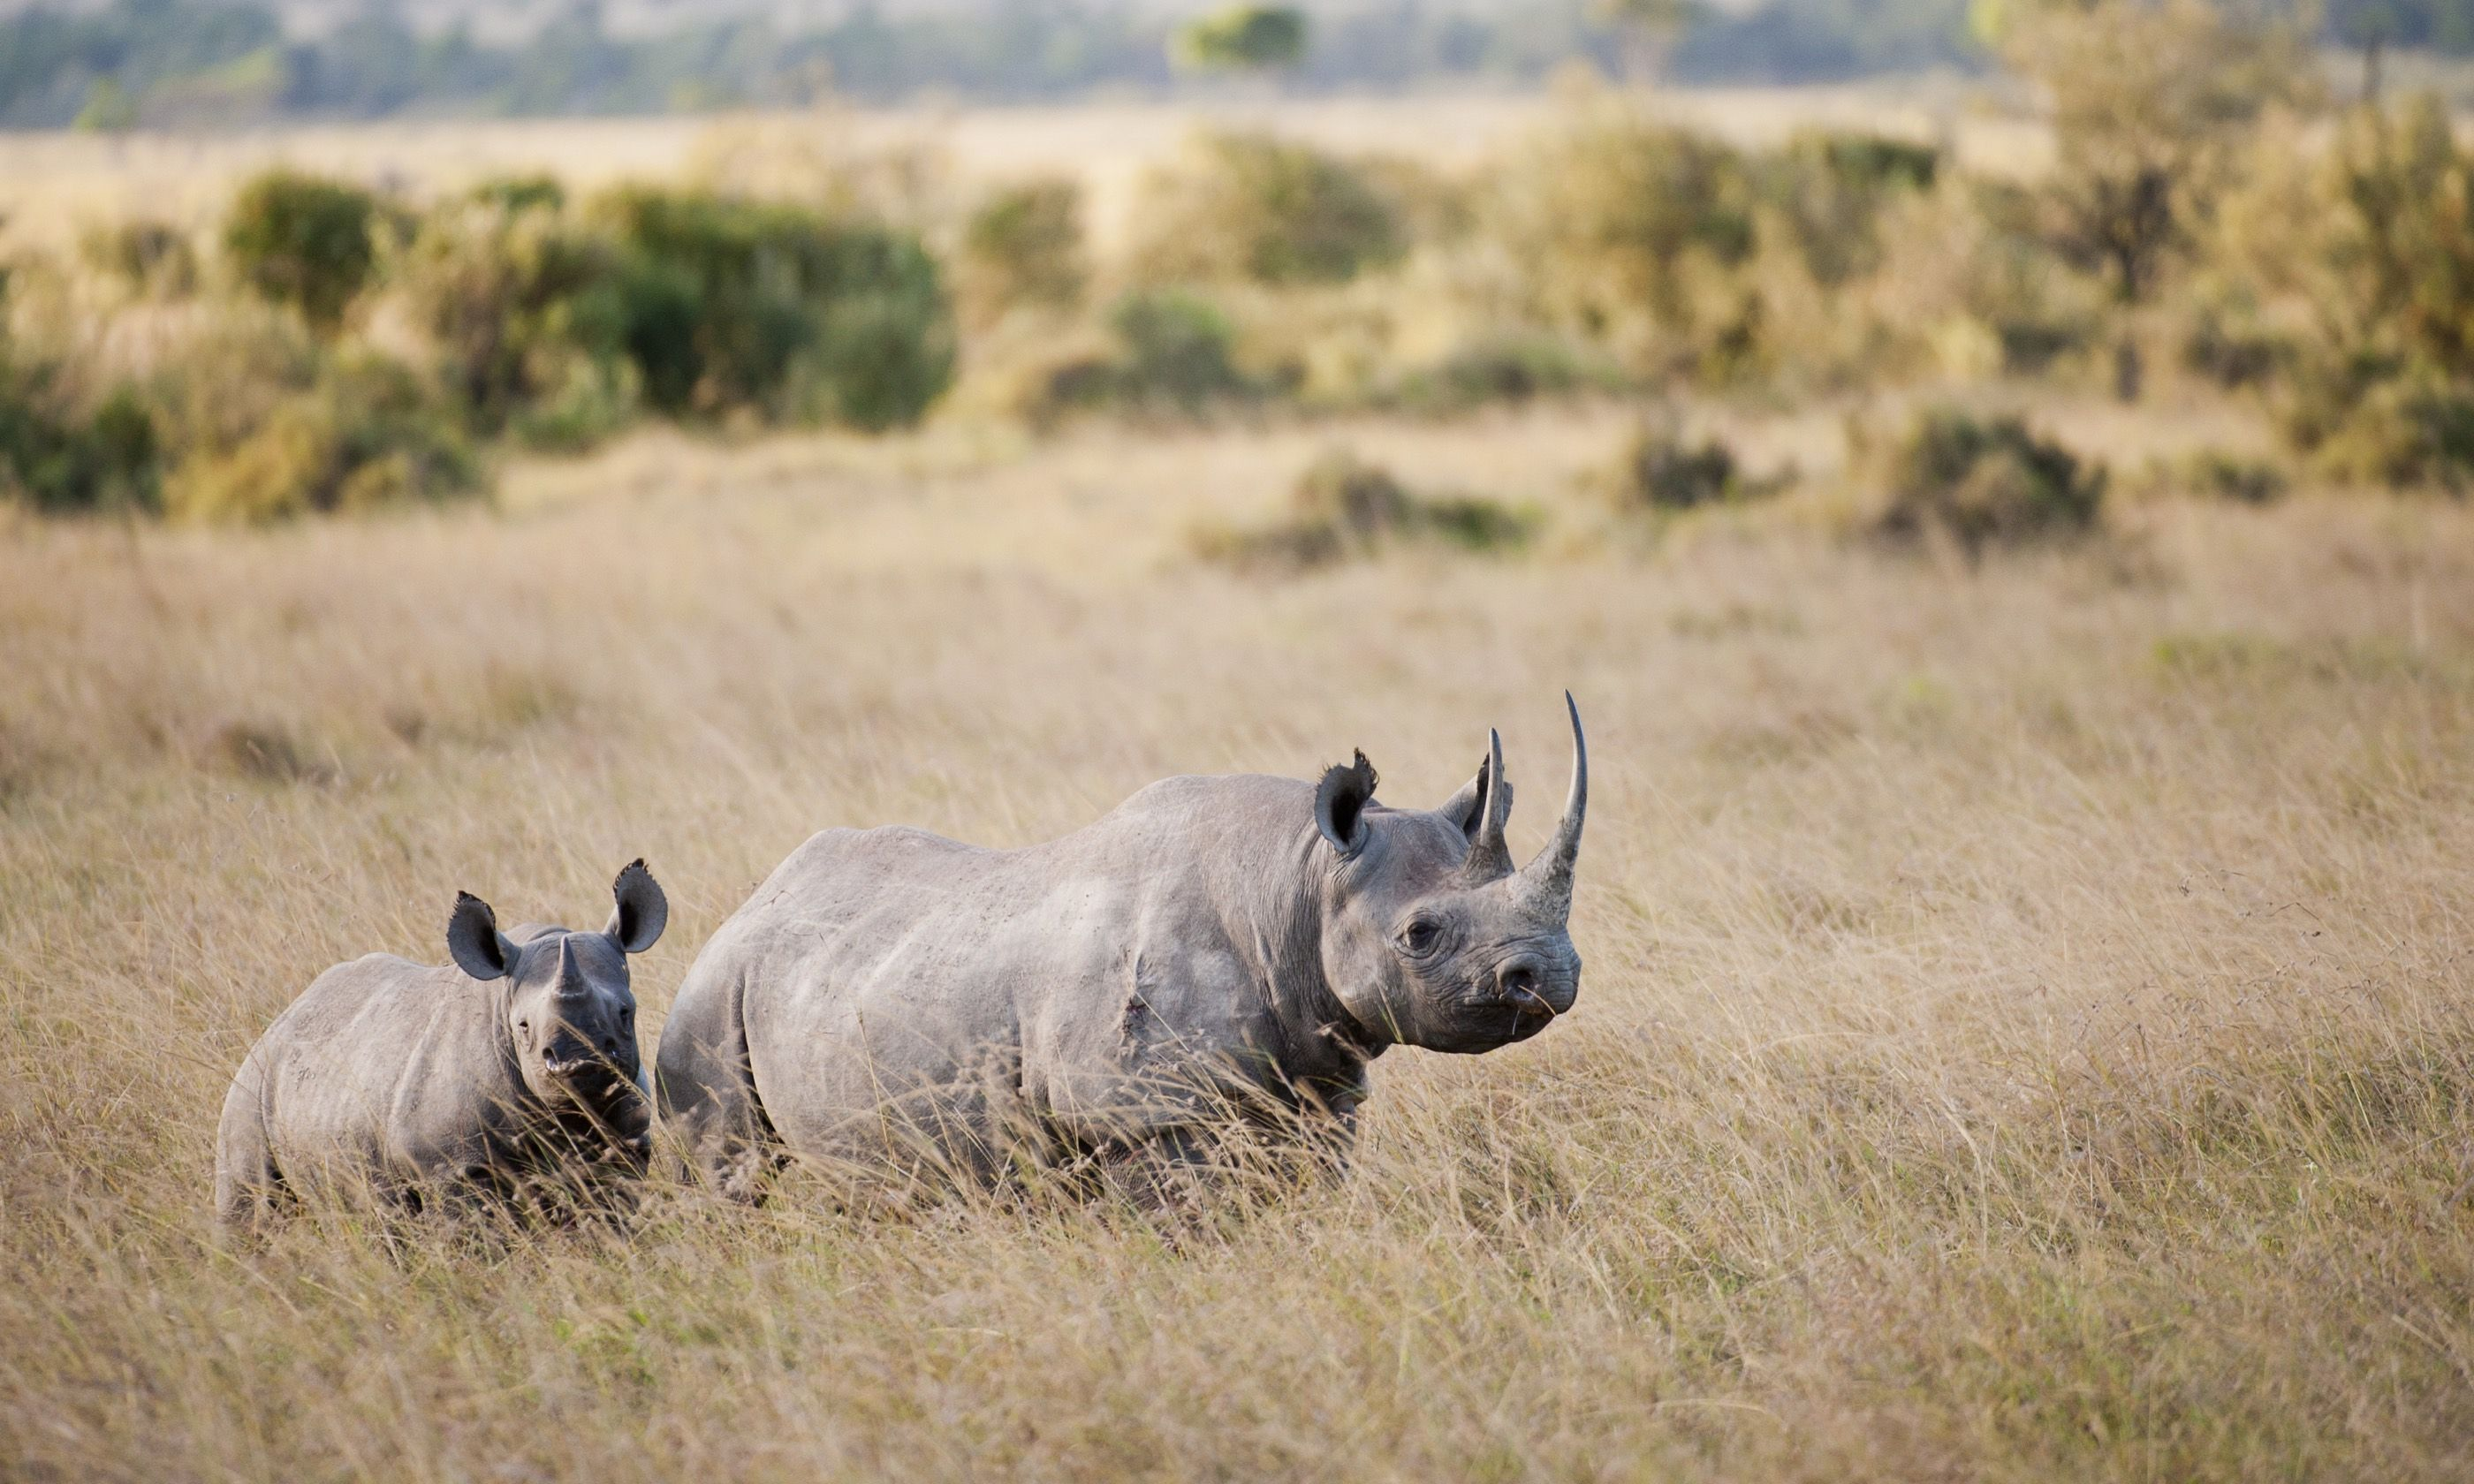 Black rhino and calf in Kenya (Dreamstime)